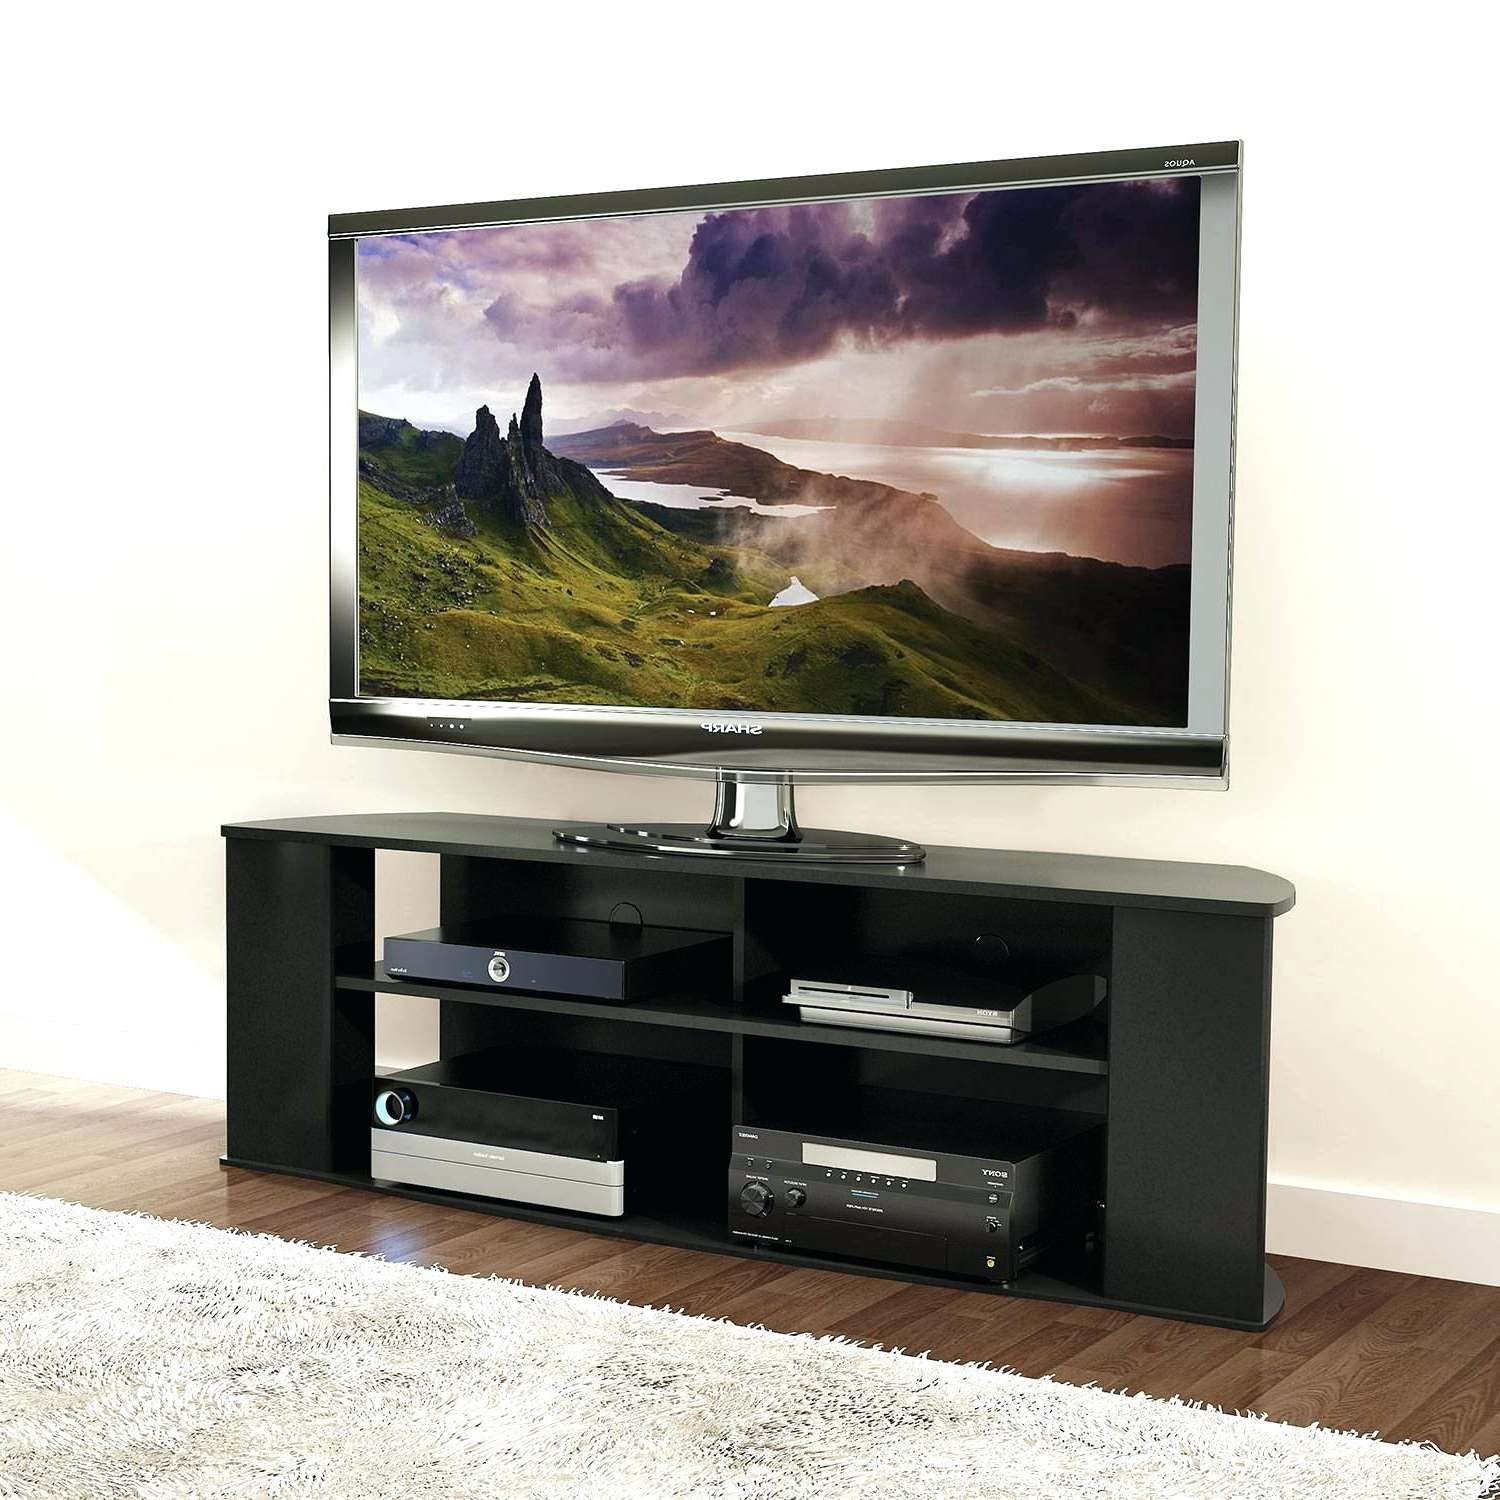 Articles With Retro Corner Tv Stand Uk Tag: Retro Corner Tv Stand Intended For Retro Corner Tv Stands (View 2 of 15)